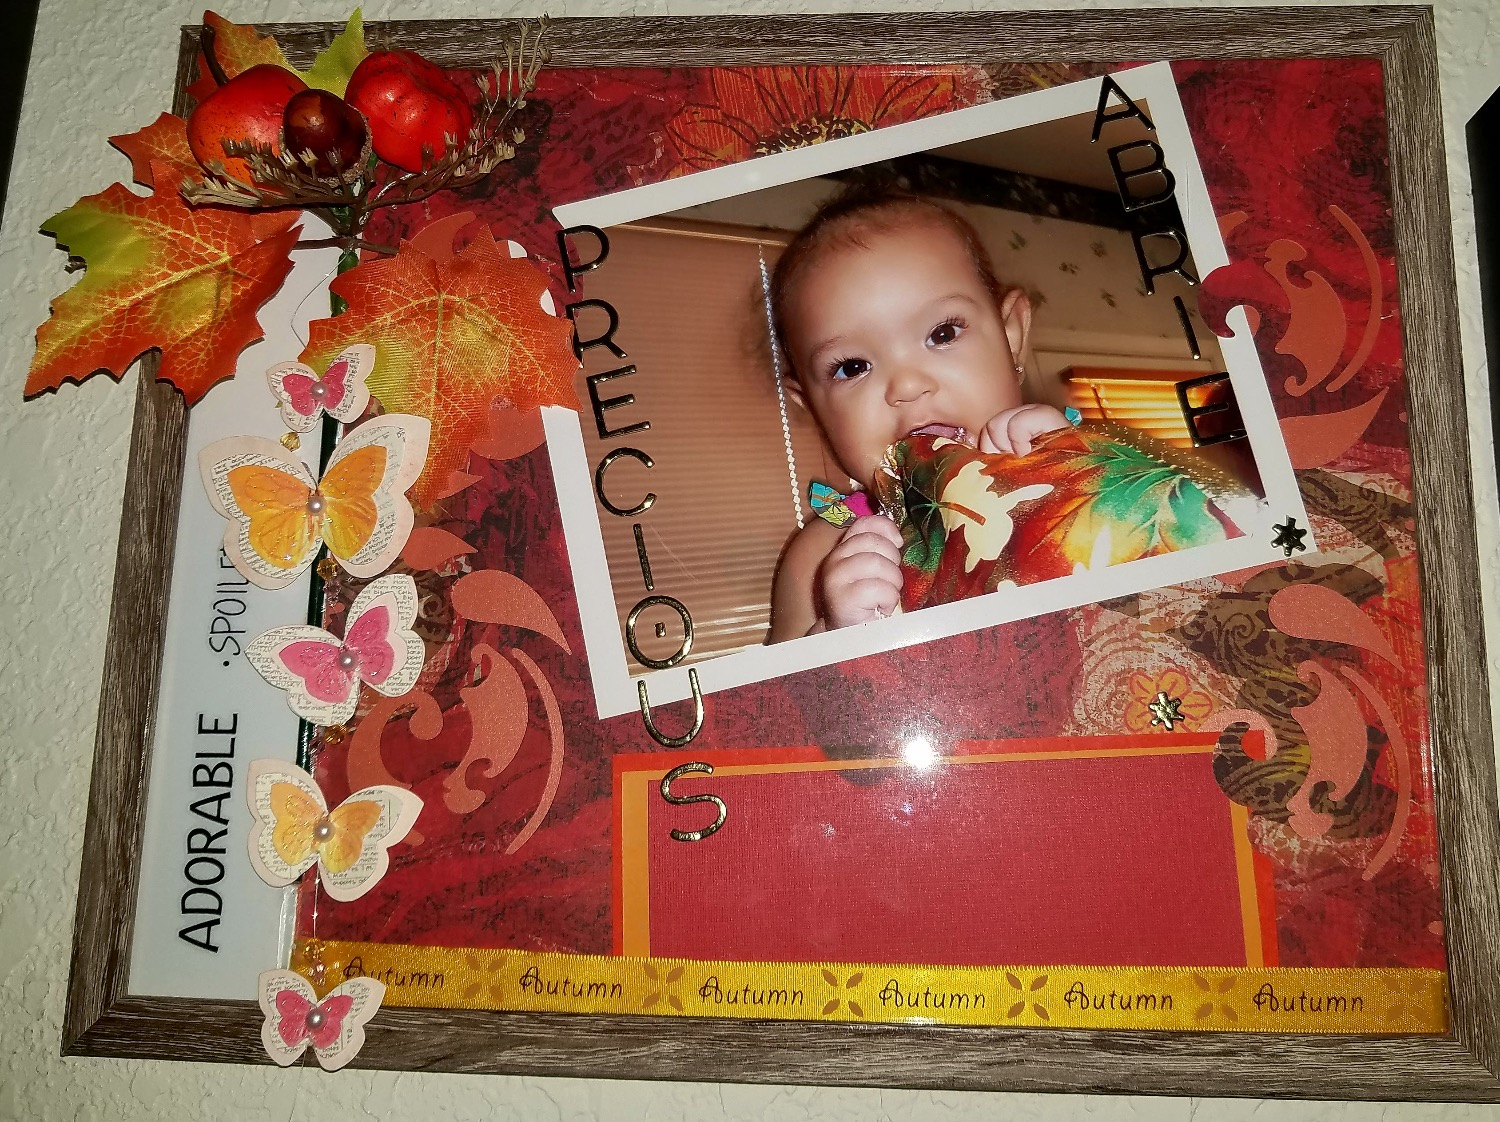 The Lofty Dragonfly Scrapbooking Design